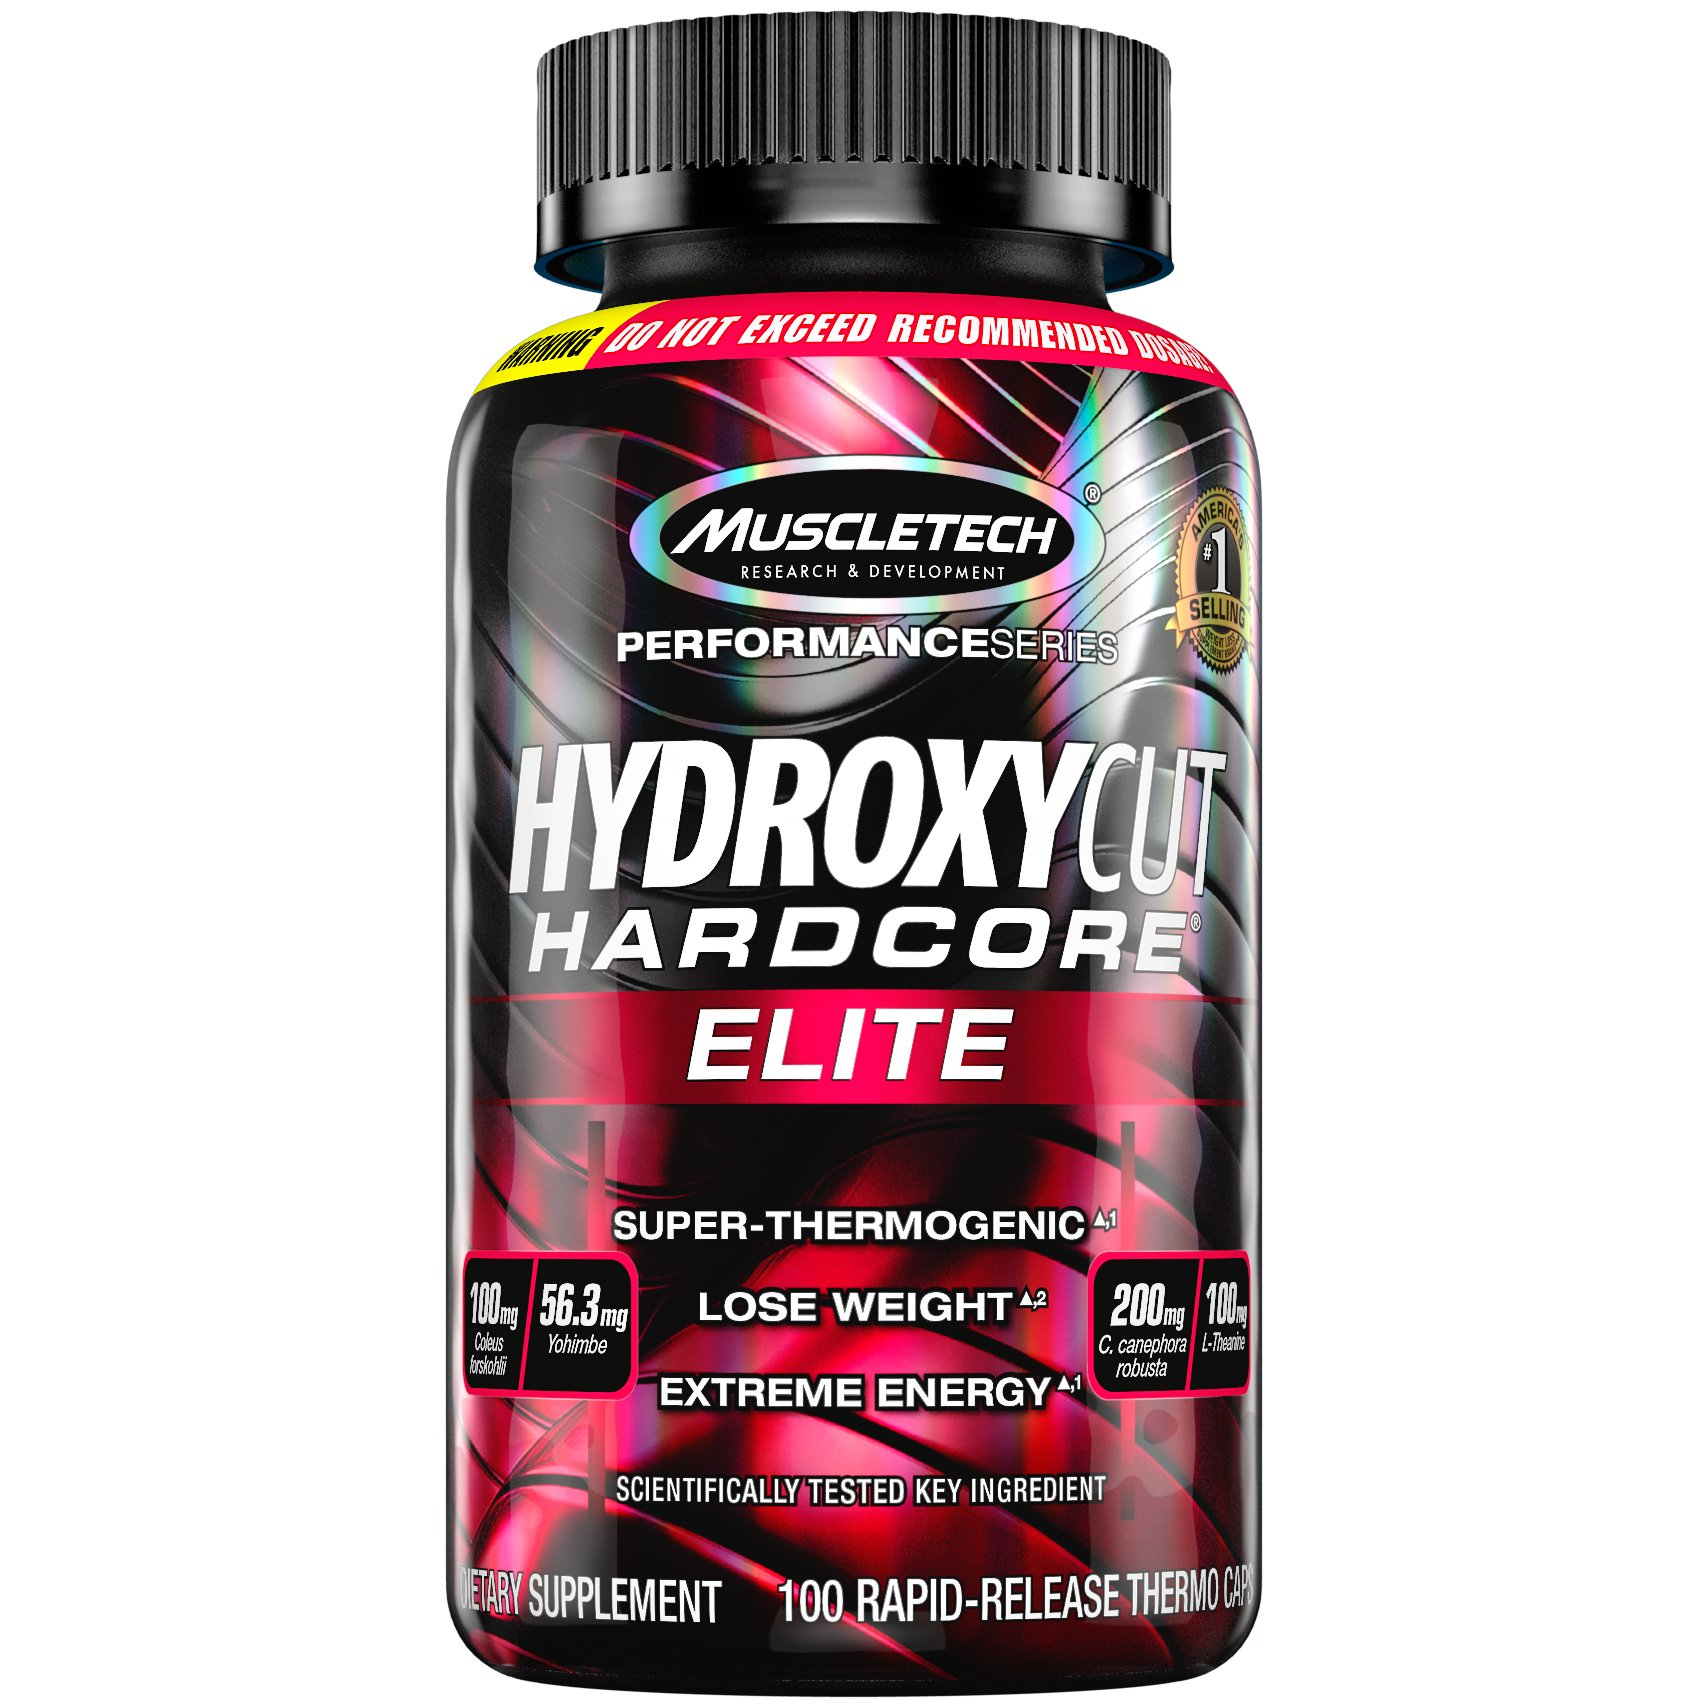 Hydroxycut Hardcore Elite Weight Loss Supplement, Designed for Hardcore Weight Loss, Energy & Enhanced Focus, 50 Servings (100 Pills) by Hydroxycut